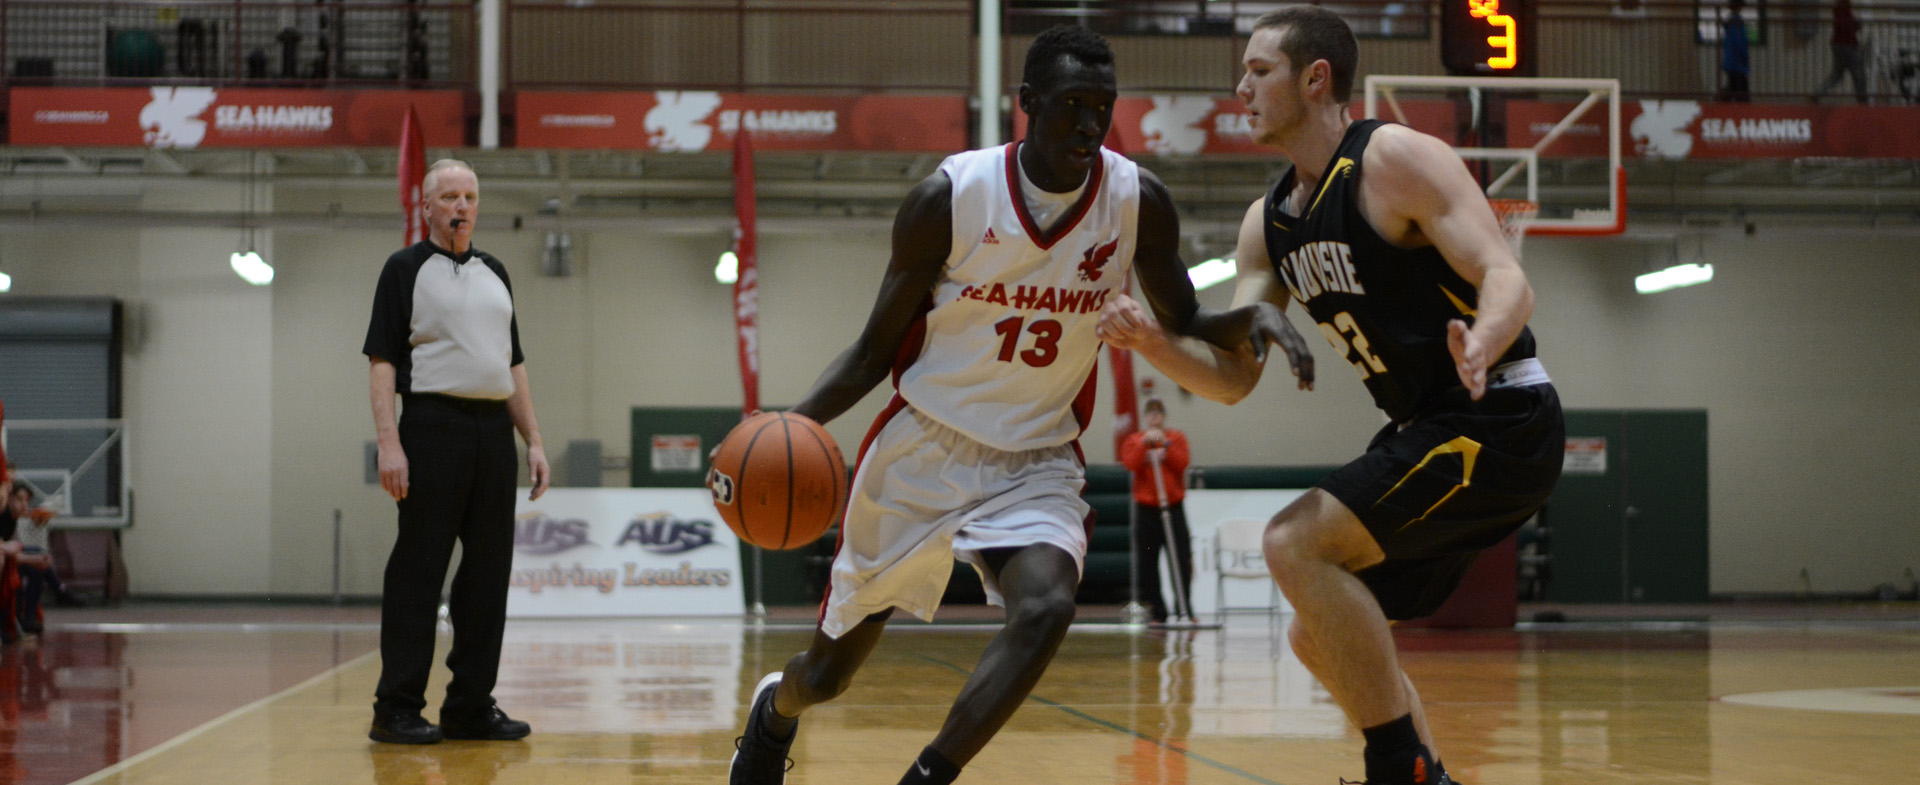 Sea-Hawks Get Tigers to Open Playoffs